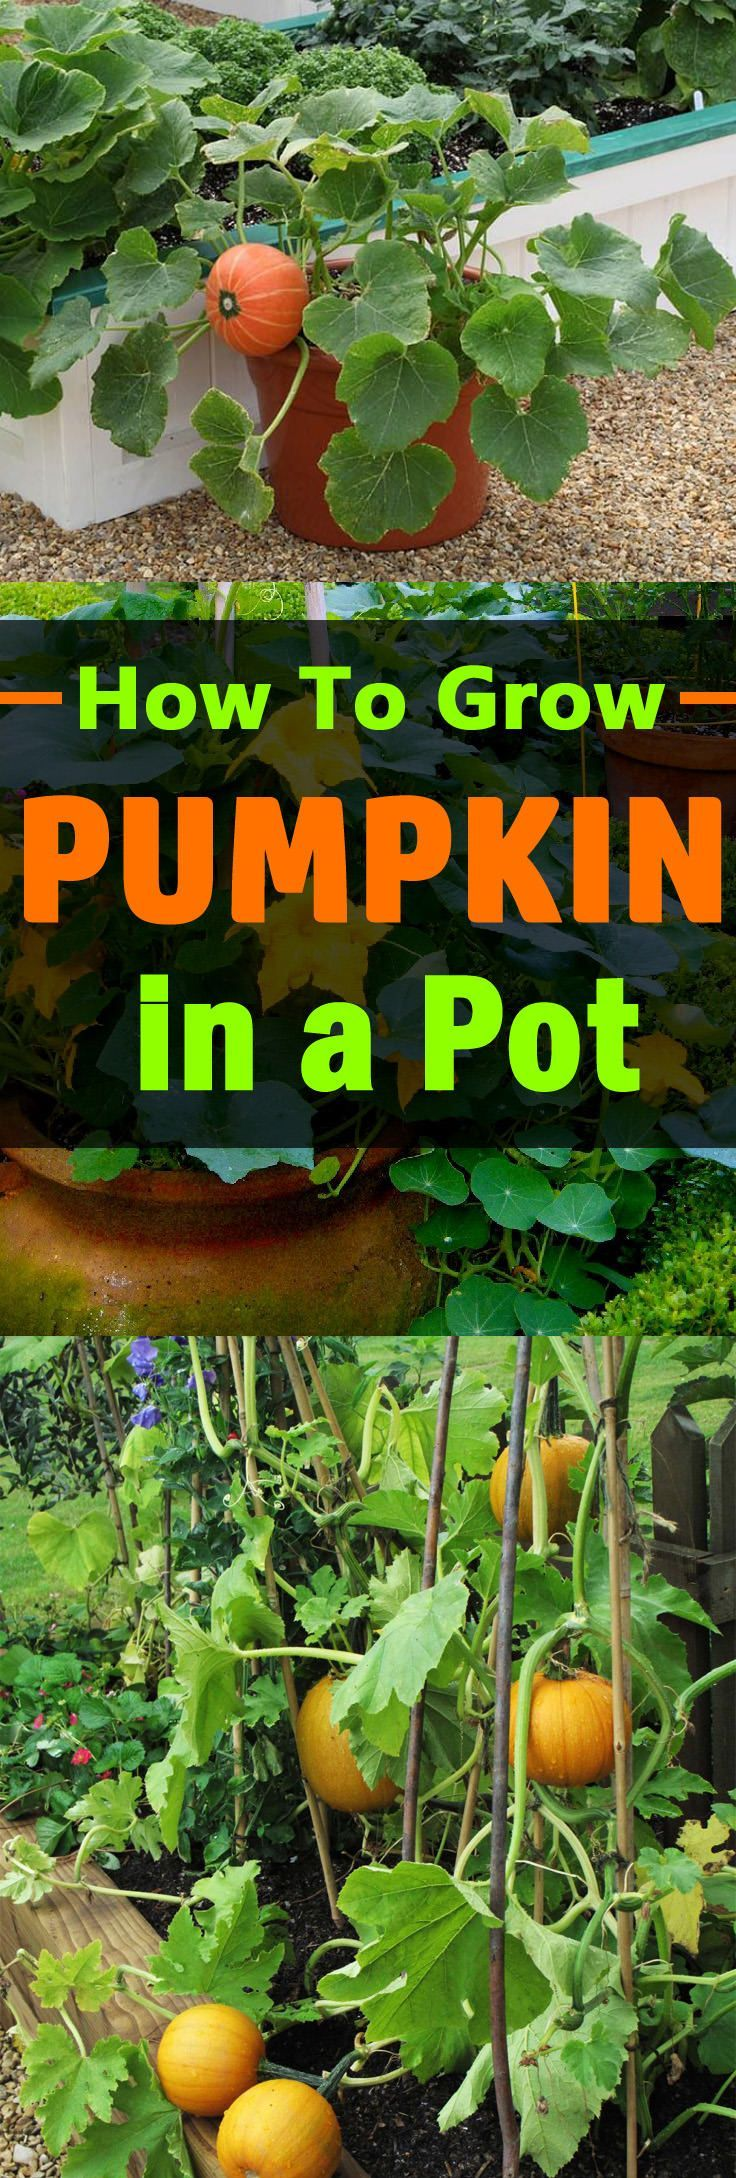 Learn how to grow pumpkins in pots, growing pumpkins in containers and pots is not difficult though it requires large containers and space. Check out!